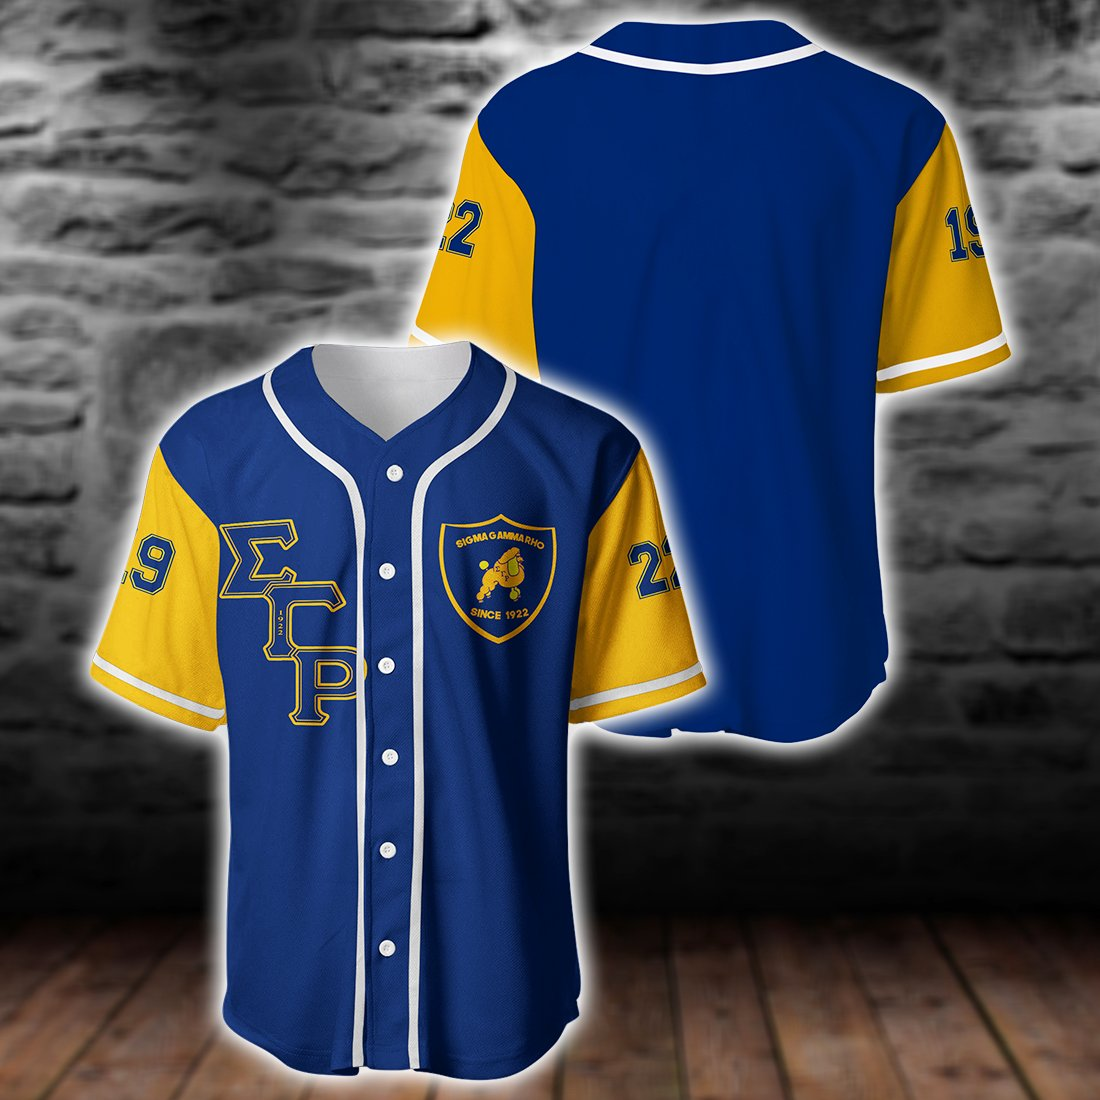 Limited Edition baseball jersey For Hot Summer